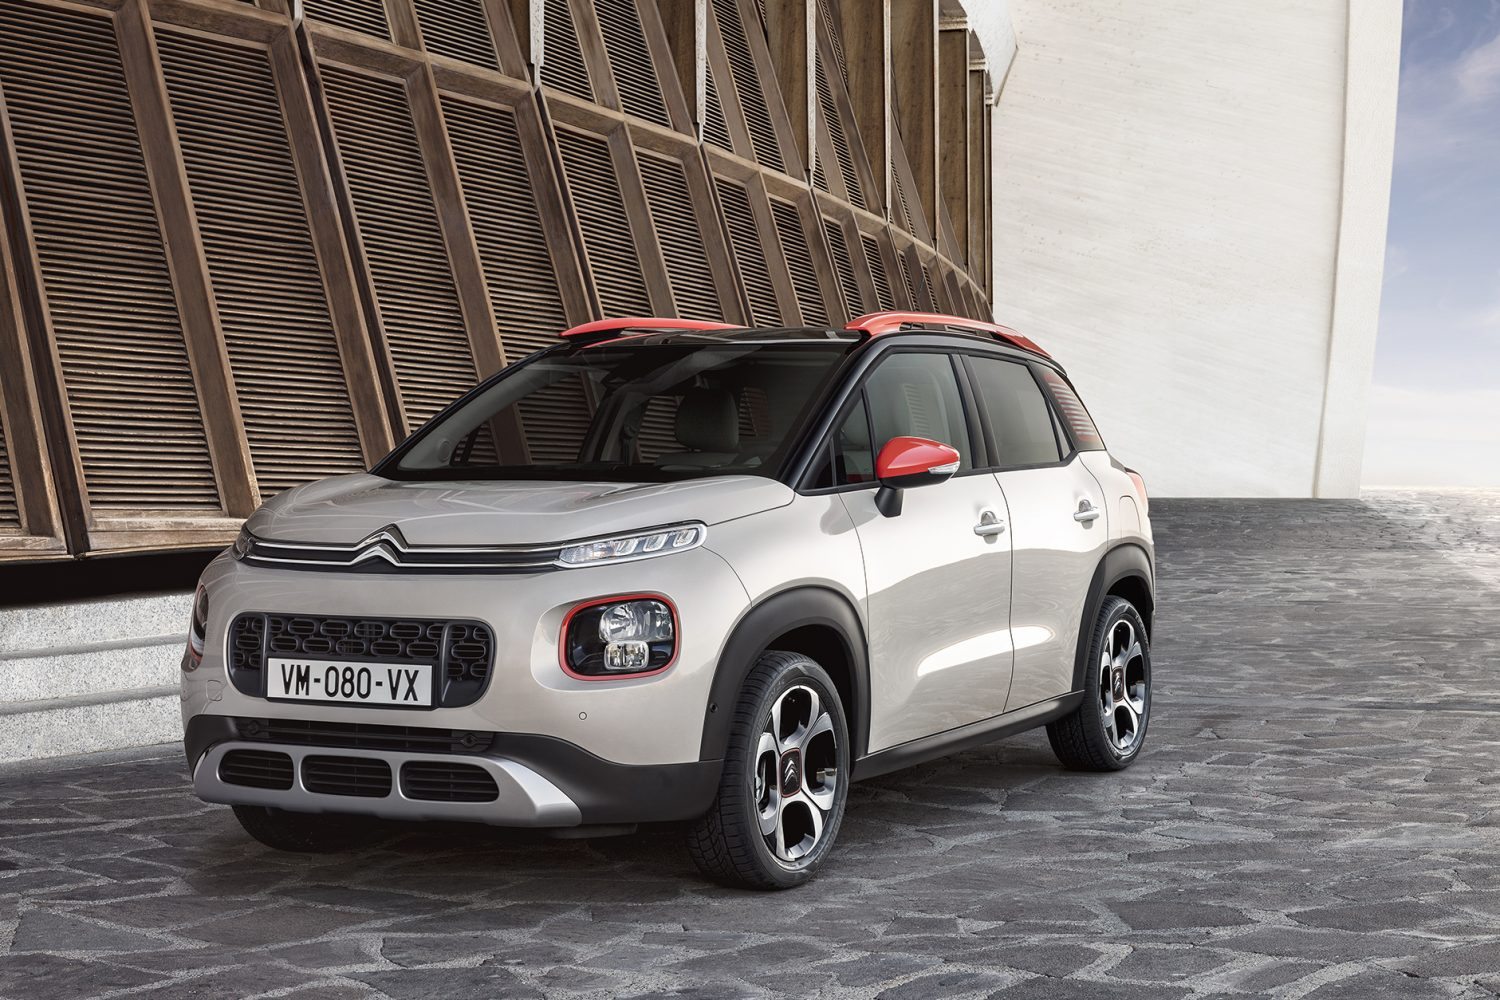 Citroën C3 Aircross, 90.000 ordini in meno di 9 mesi